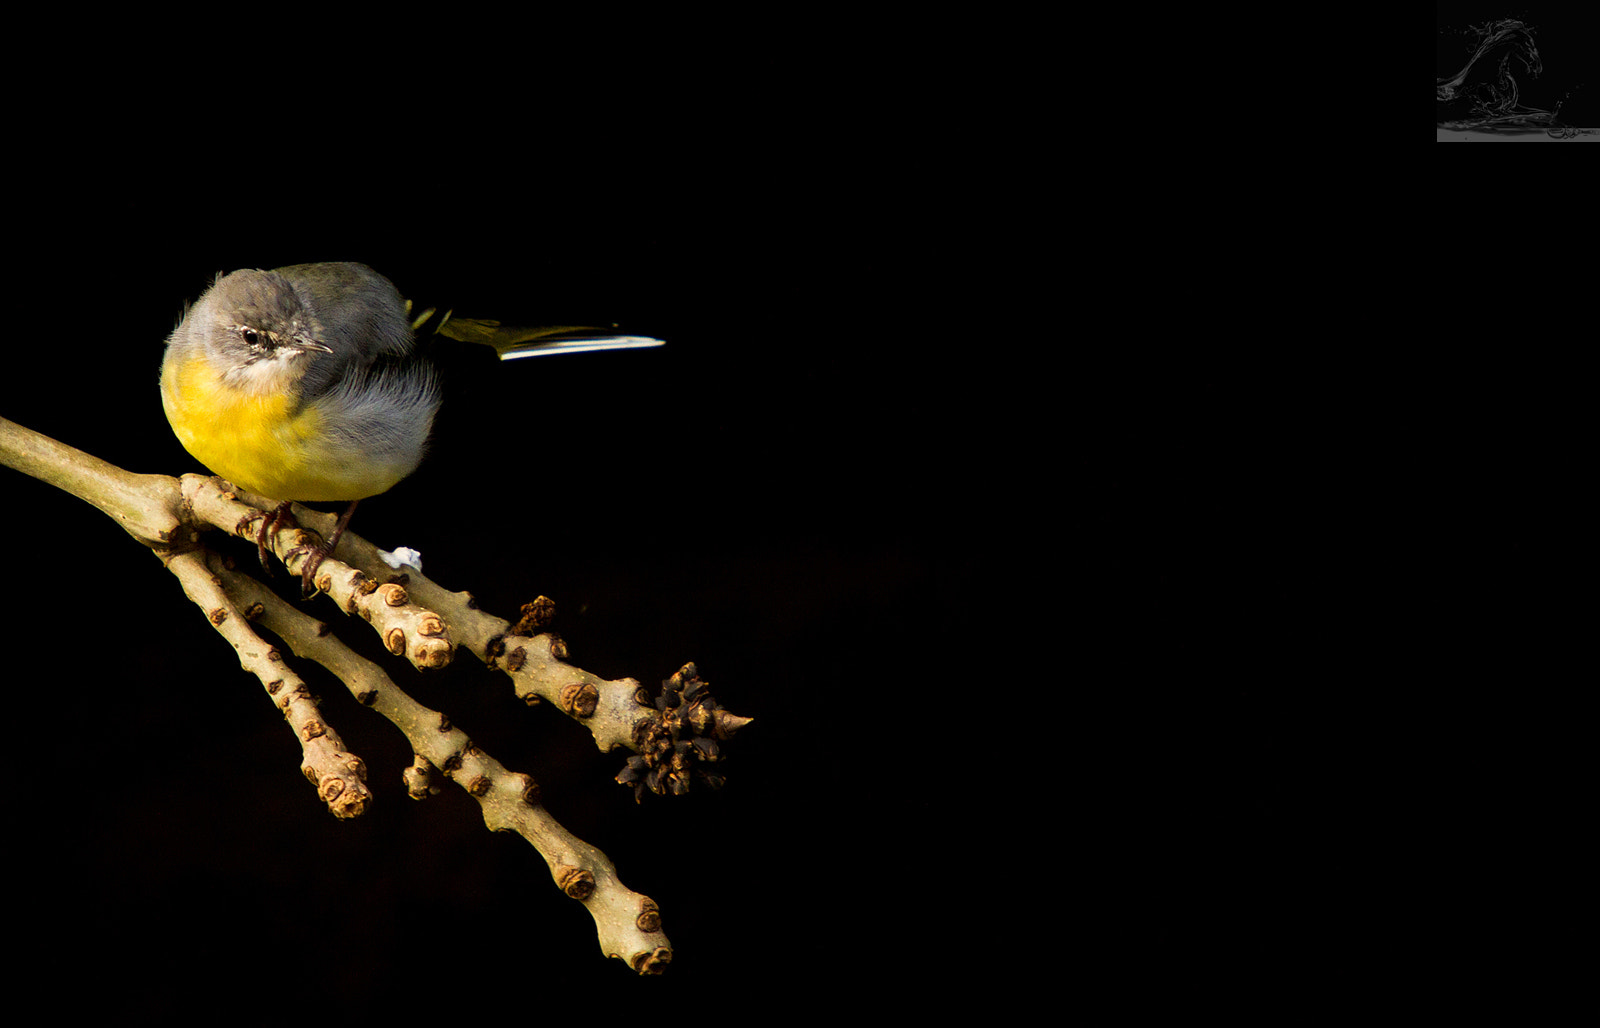 Photograph Grey Wagtail 1 by Kurien Yohannan on 500px